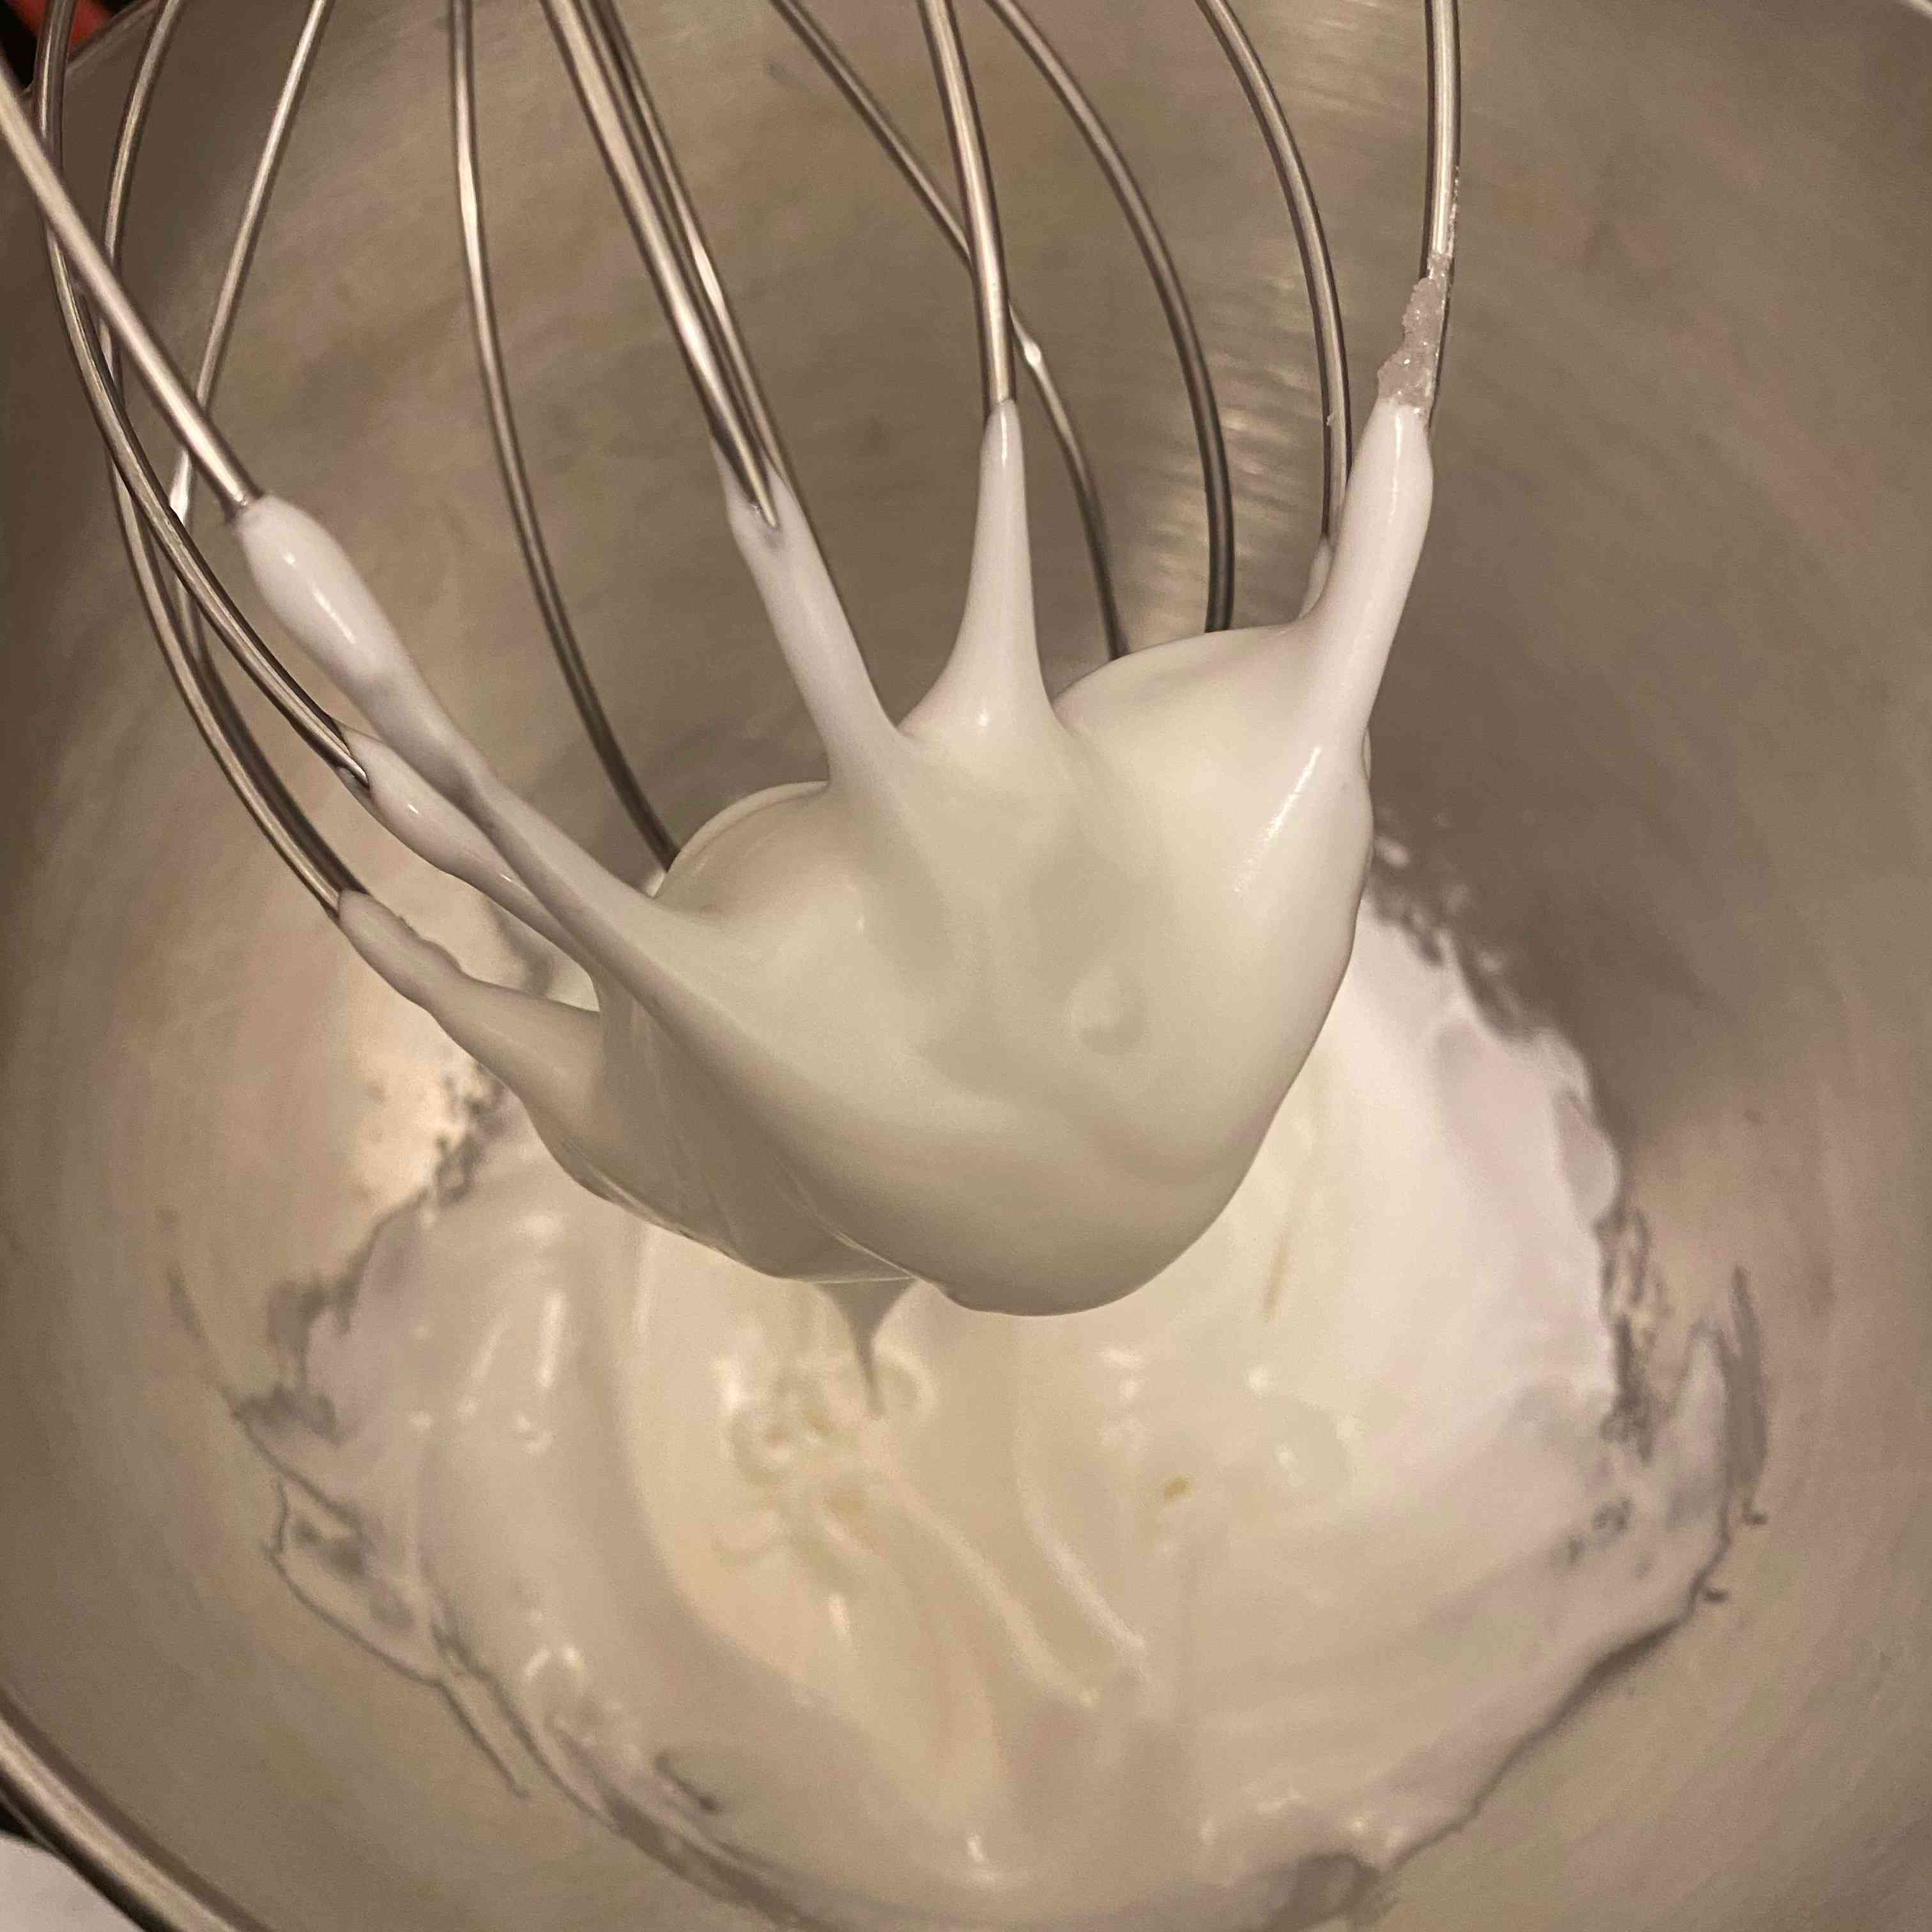 Classic Meringue Pie Topping Tester Image